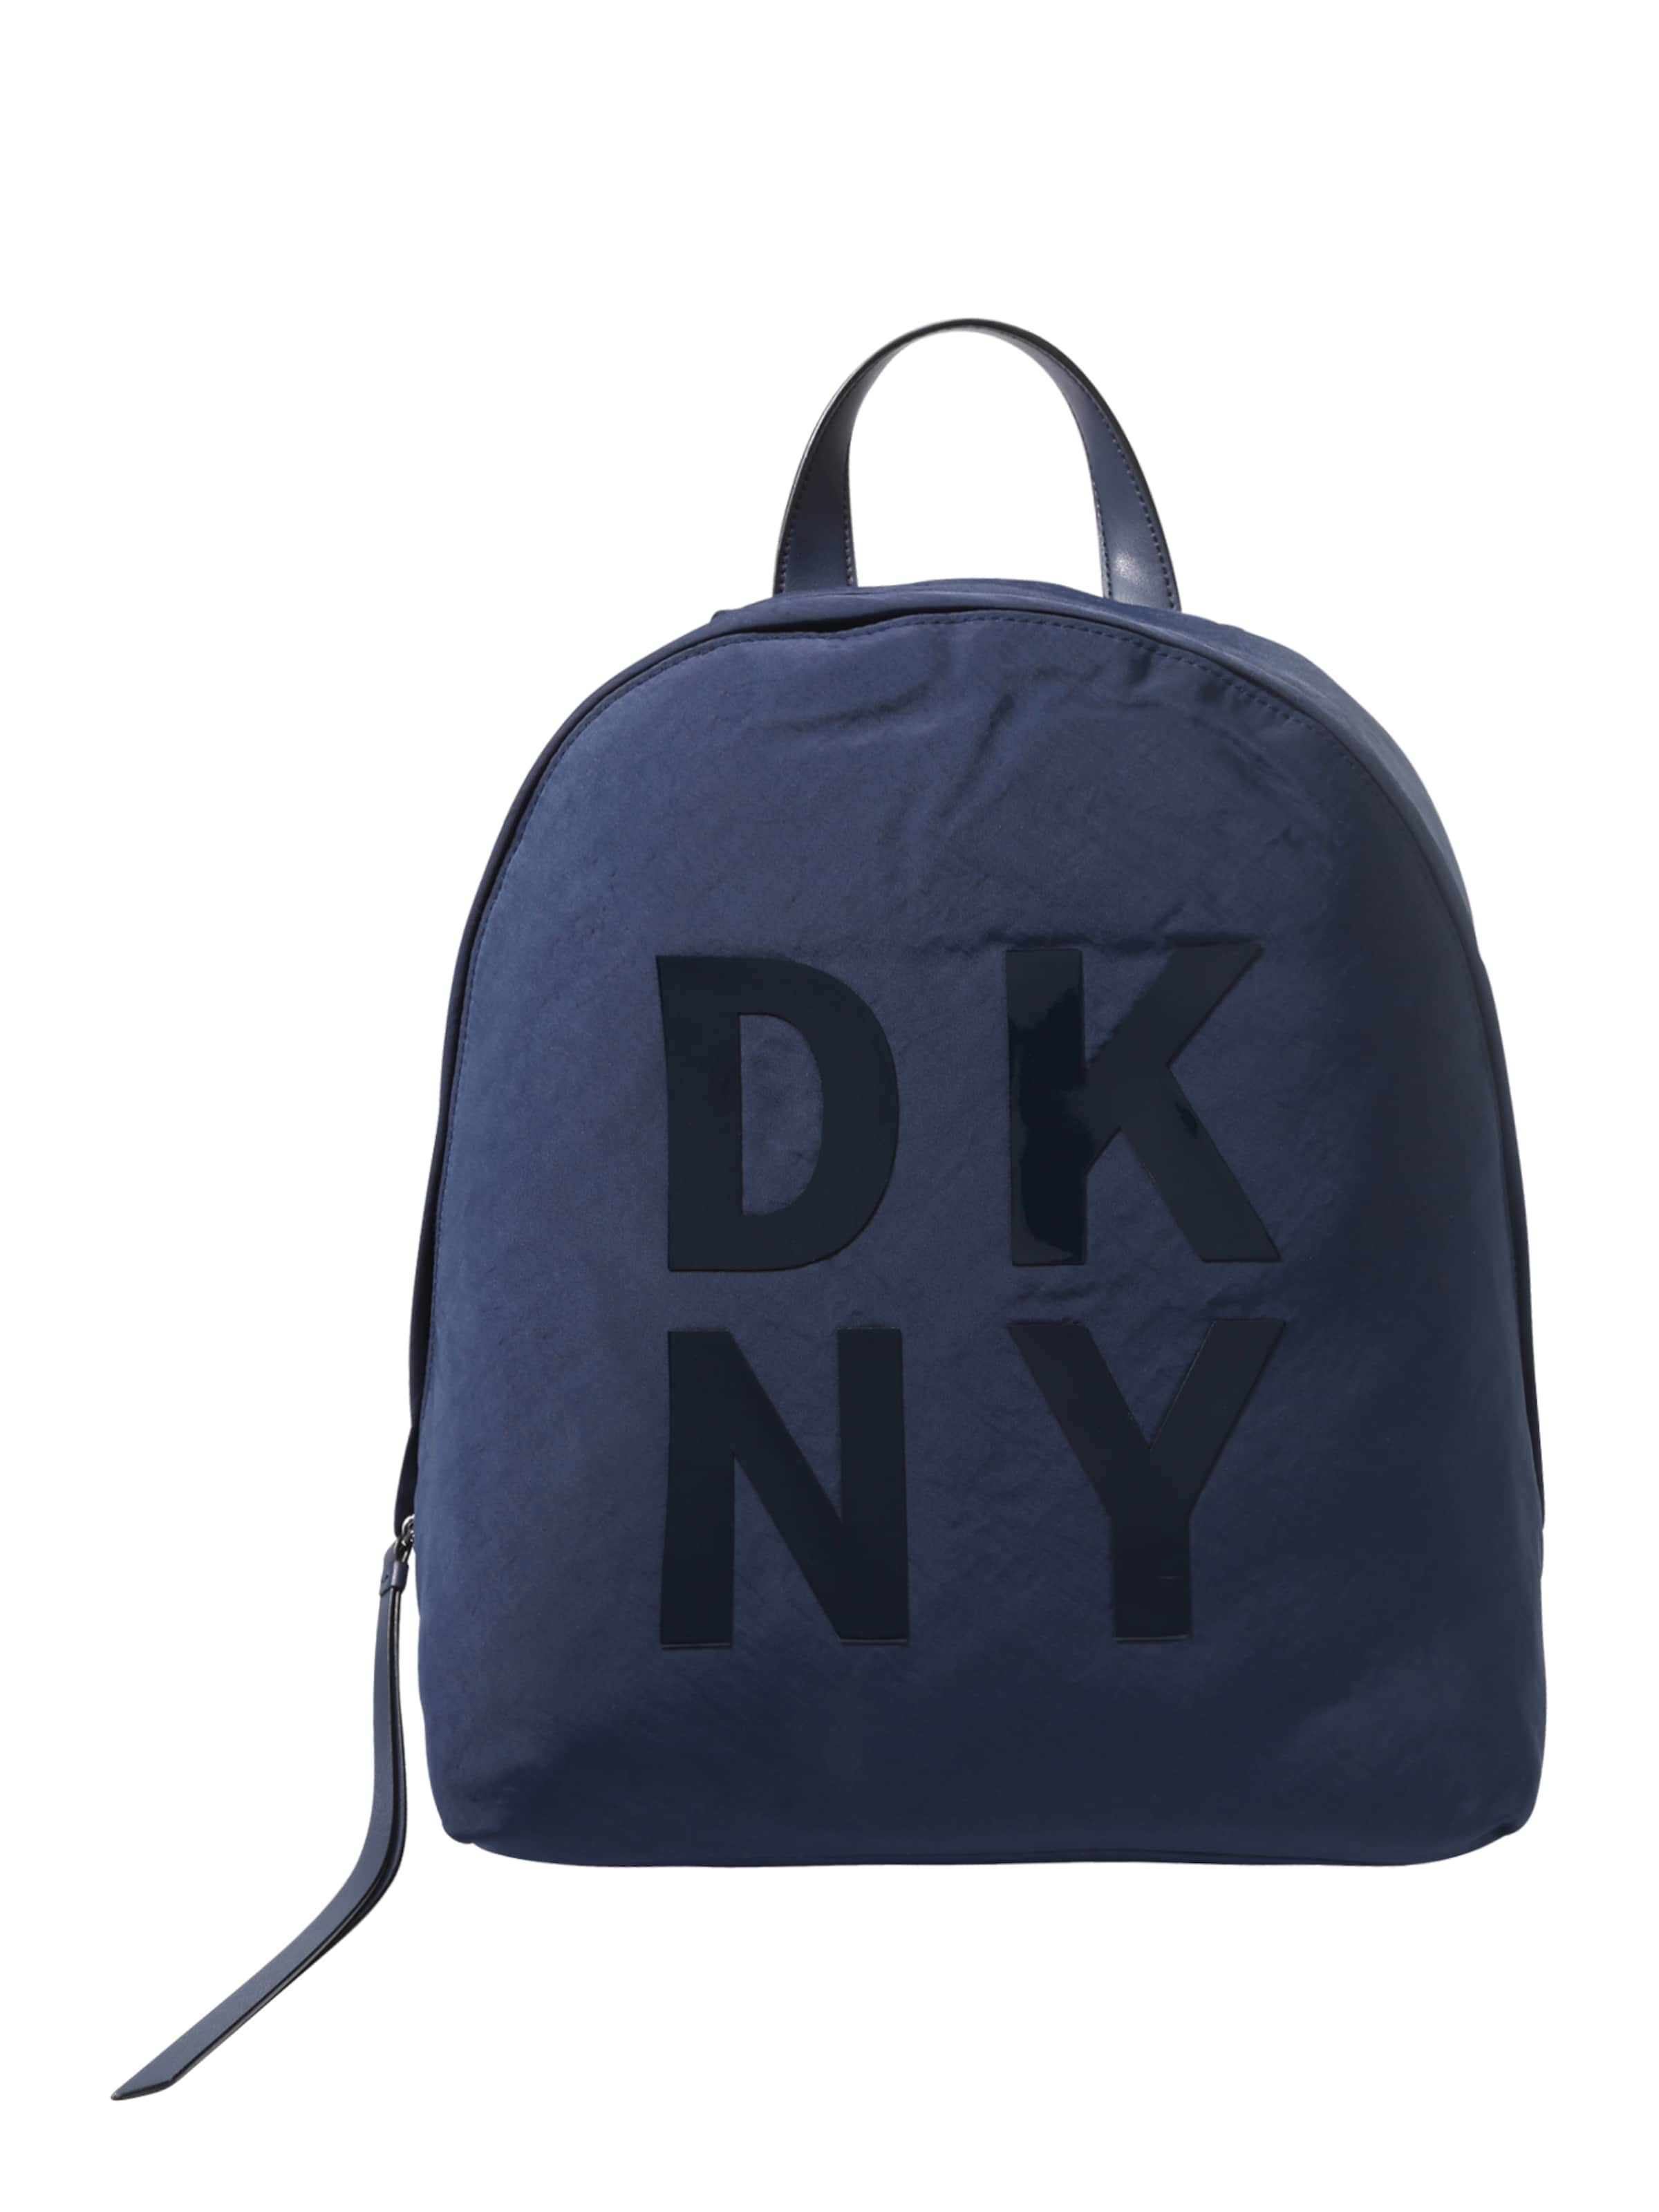 Tasche 'ave Dkny lg nylon' Backpack In Navy A D2H9IE